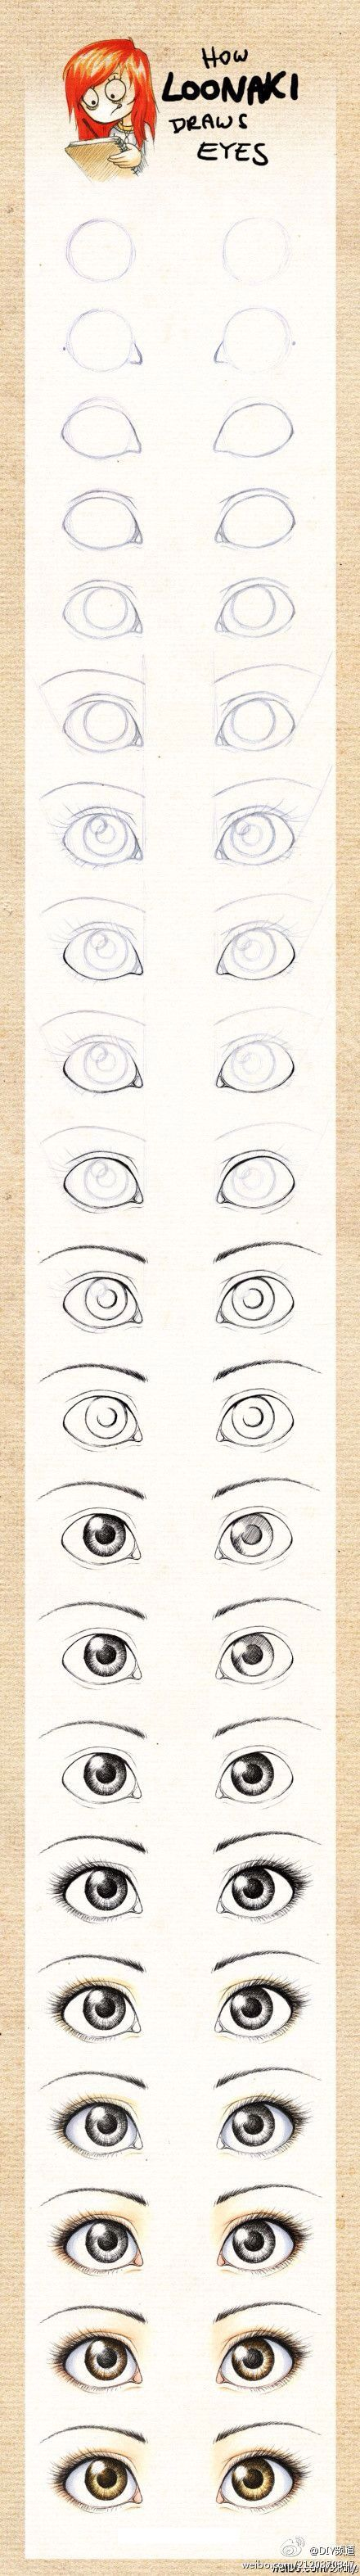 Wow... I wish I could draw that well. Nice symmetry.